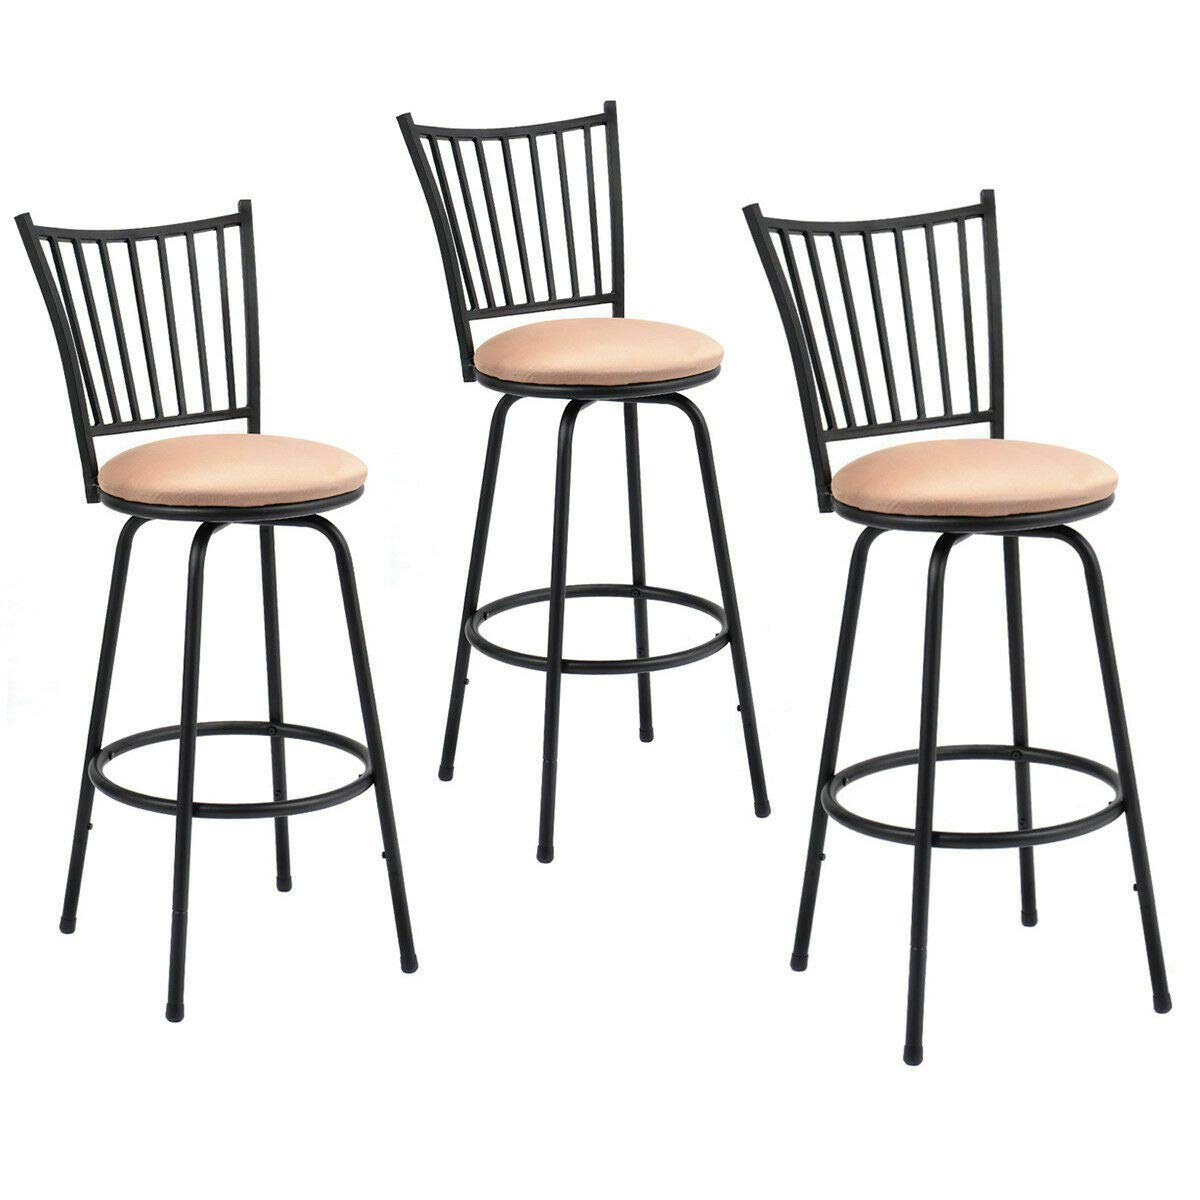 Amazon.com: (NEW Patio & Garden Furniture) Set of 3 Swivel ...